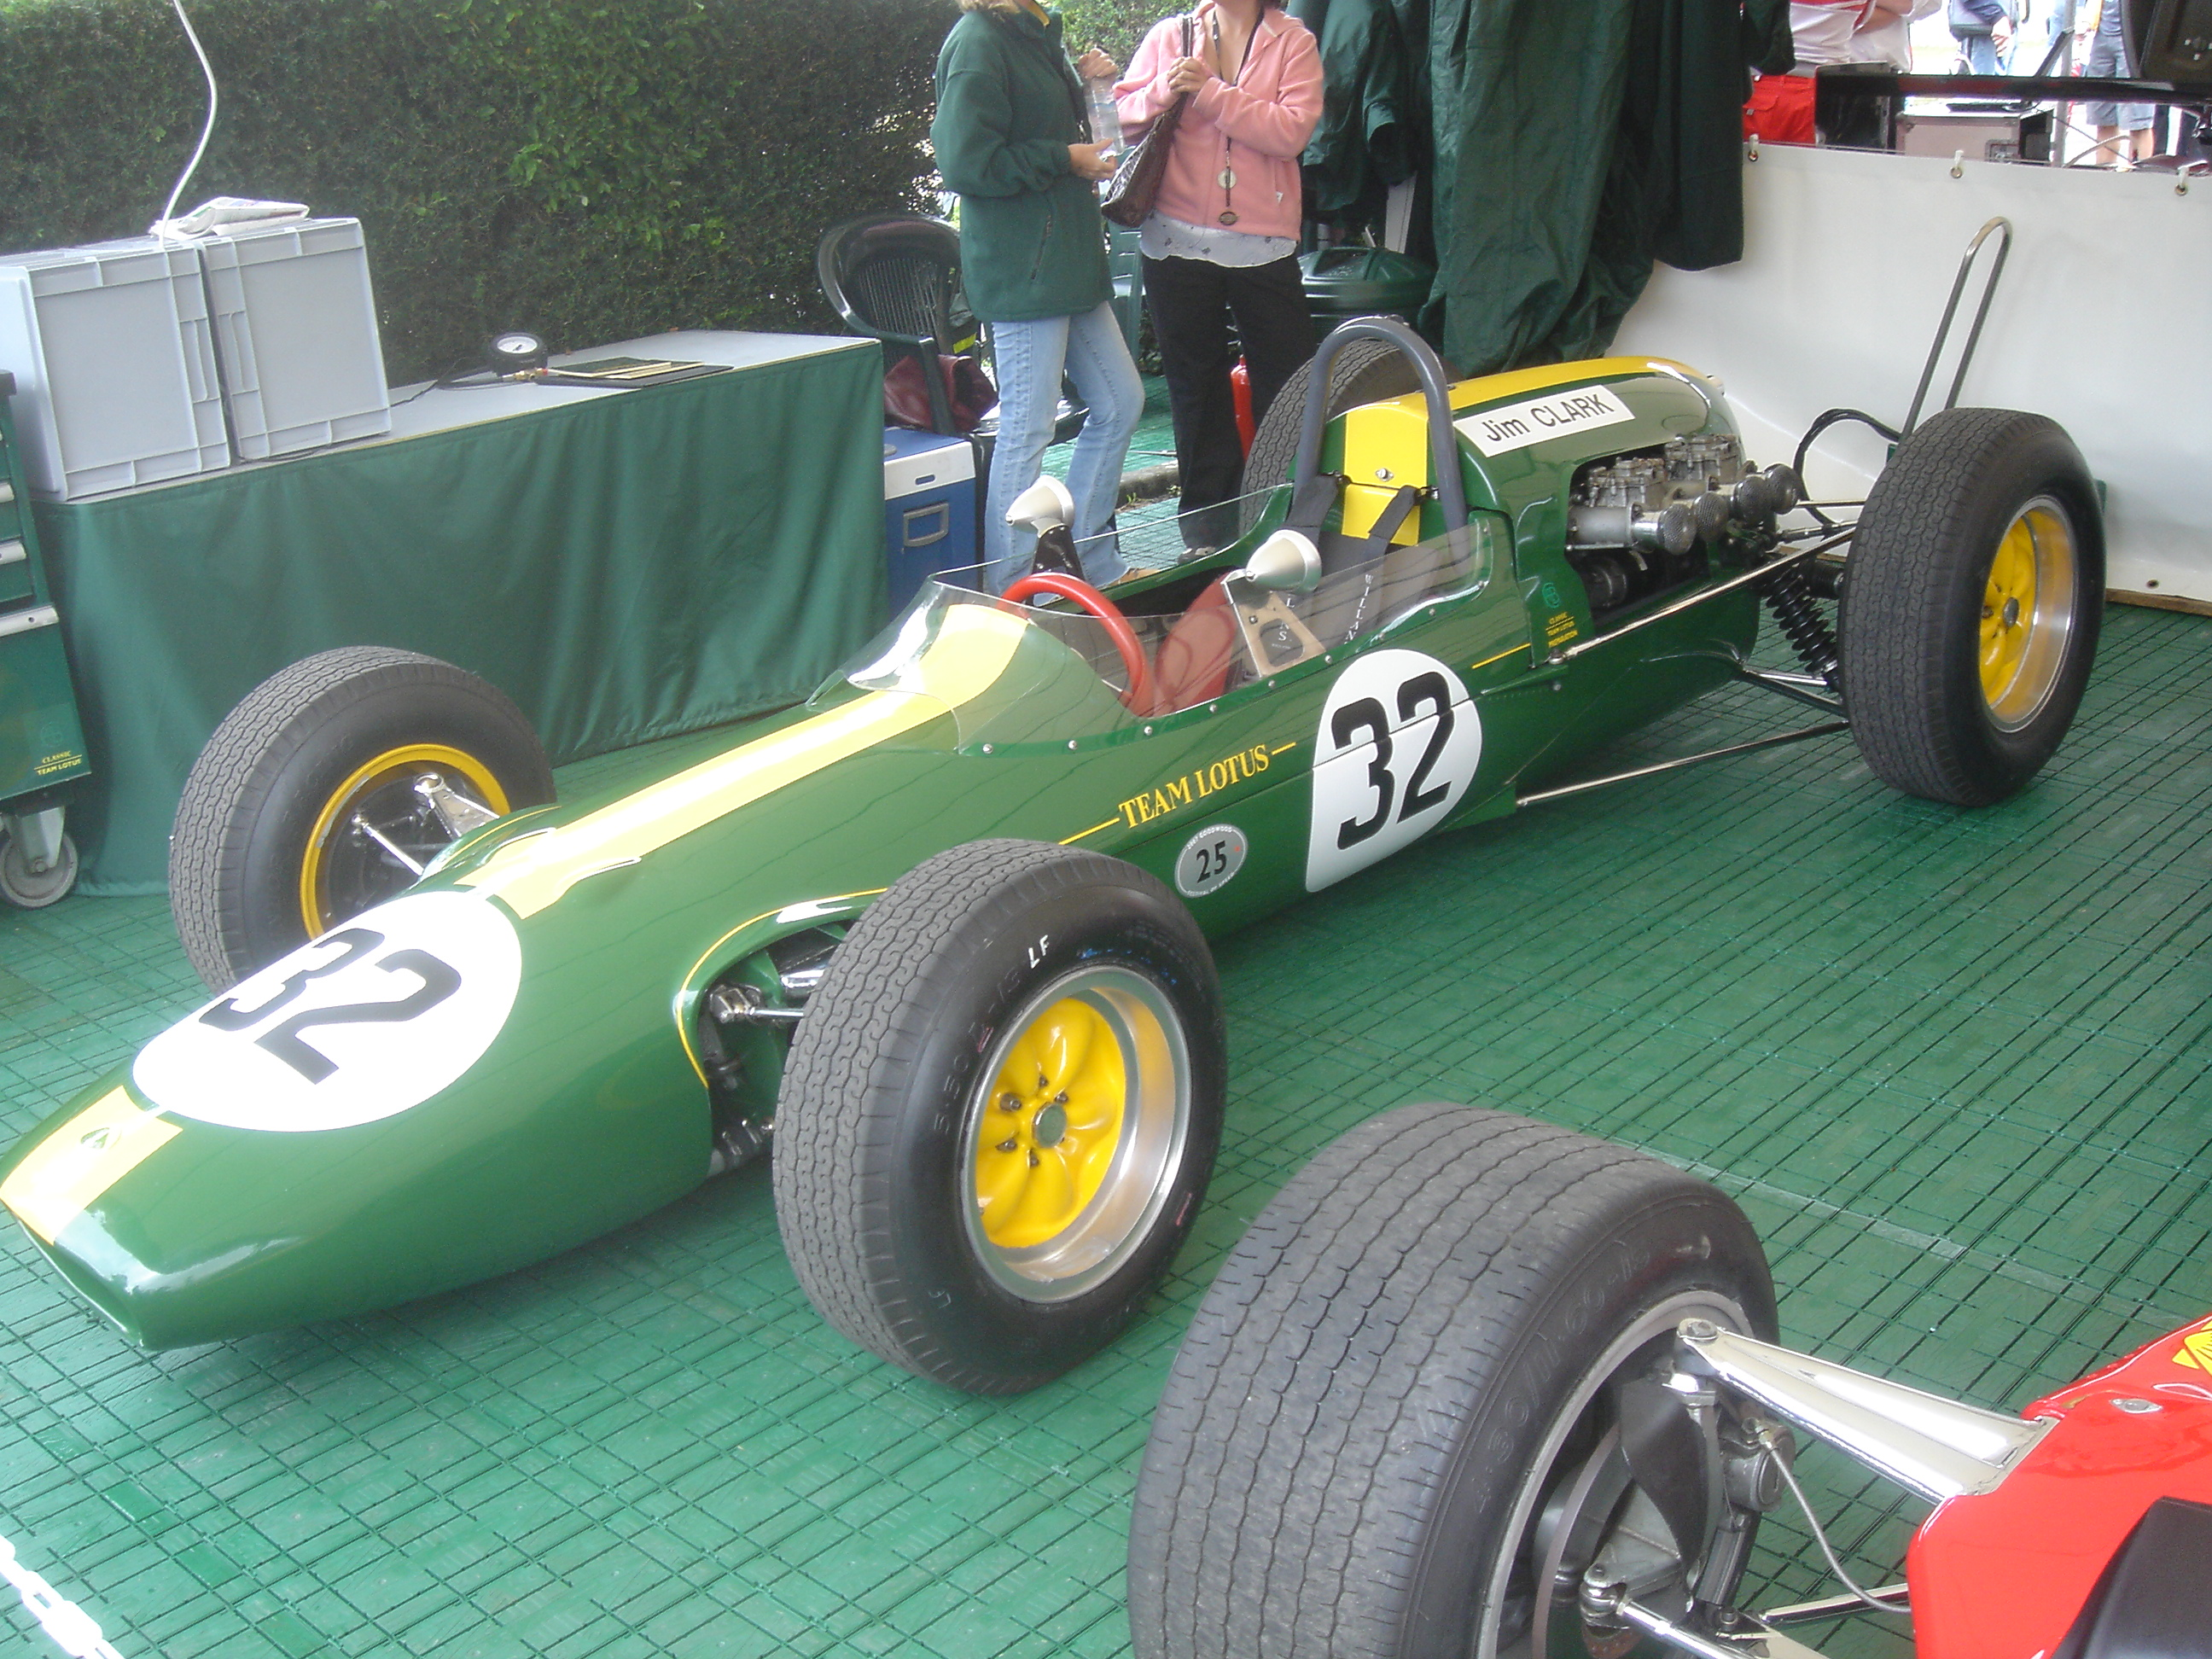 File:Goodwood2007-021 Lotus Climax 25 (1963).jpg - Wikimedia Commons